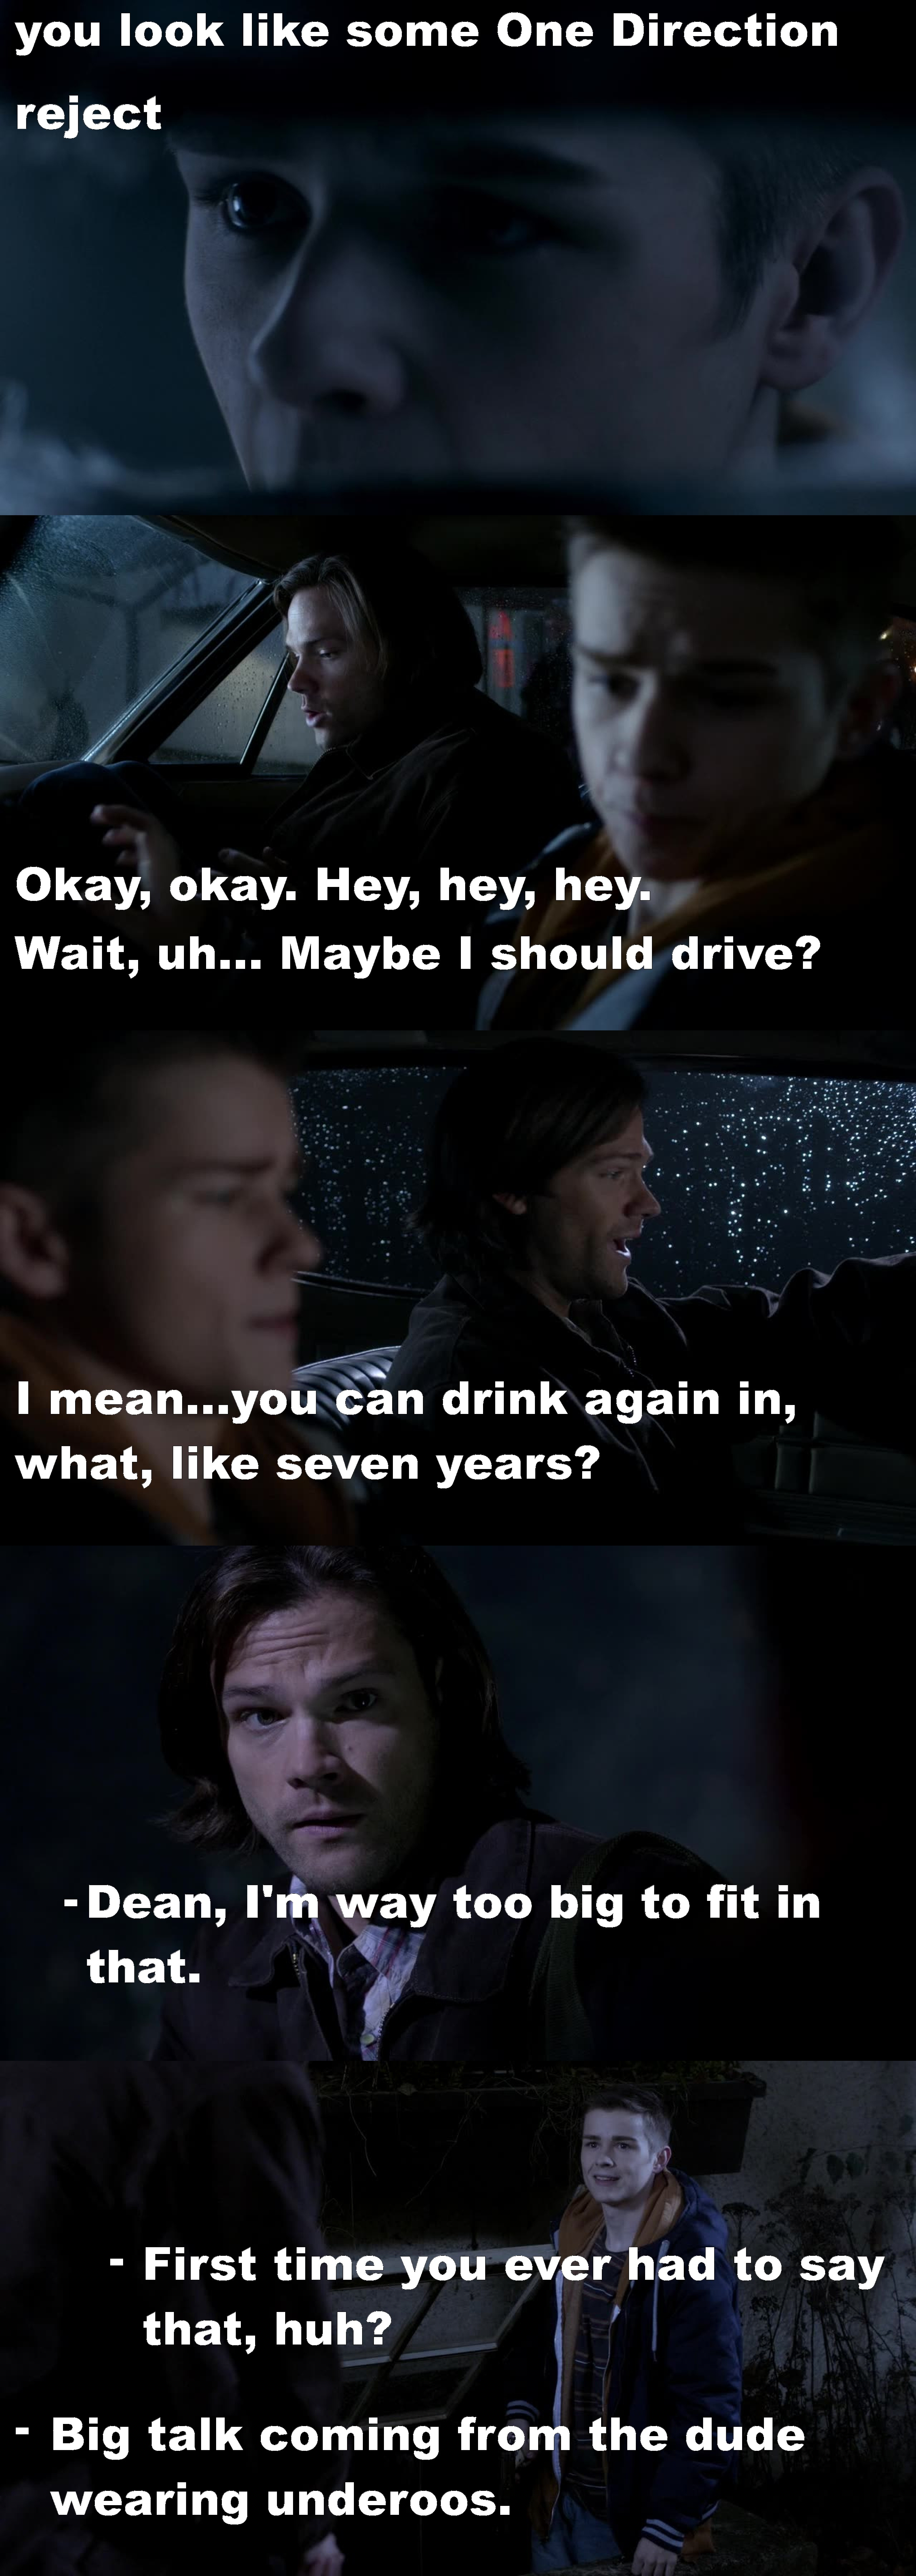 This episode was freakin hilarious! There were so many fun moments that it's hard to pic a favorite. Dylan Everett once again played Dean perfectly! And Jareds faces/Sams reaction were so fun to watch. Definitely one of my favorite episodes. So what's next, gender swap?! ;)